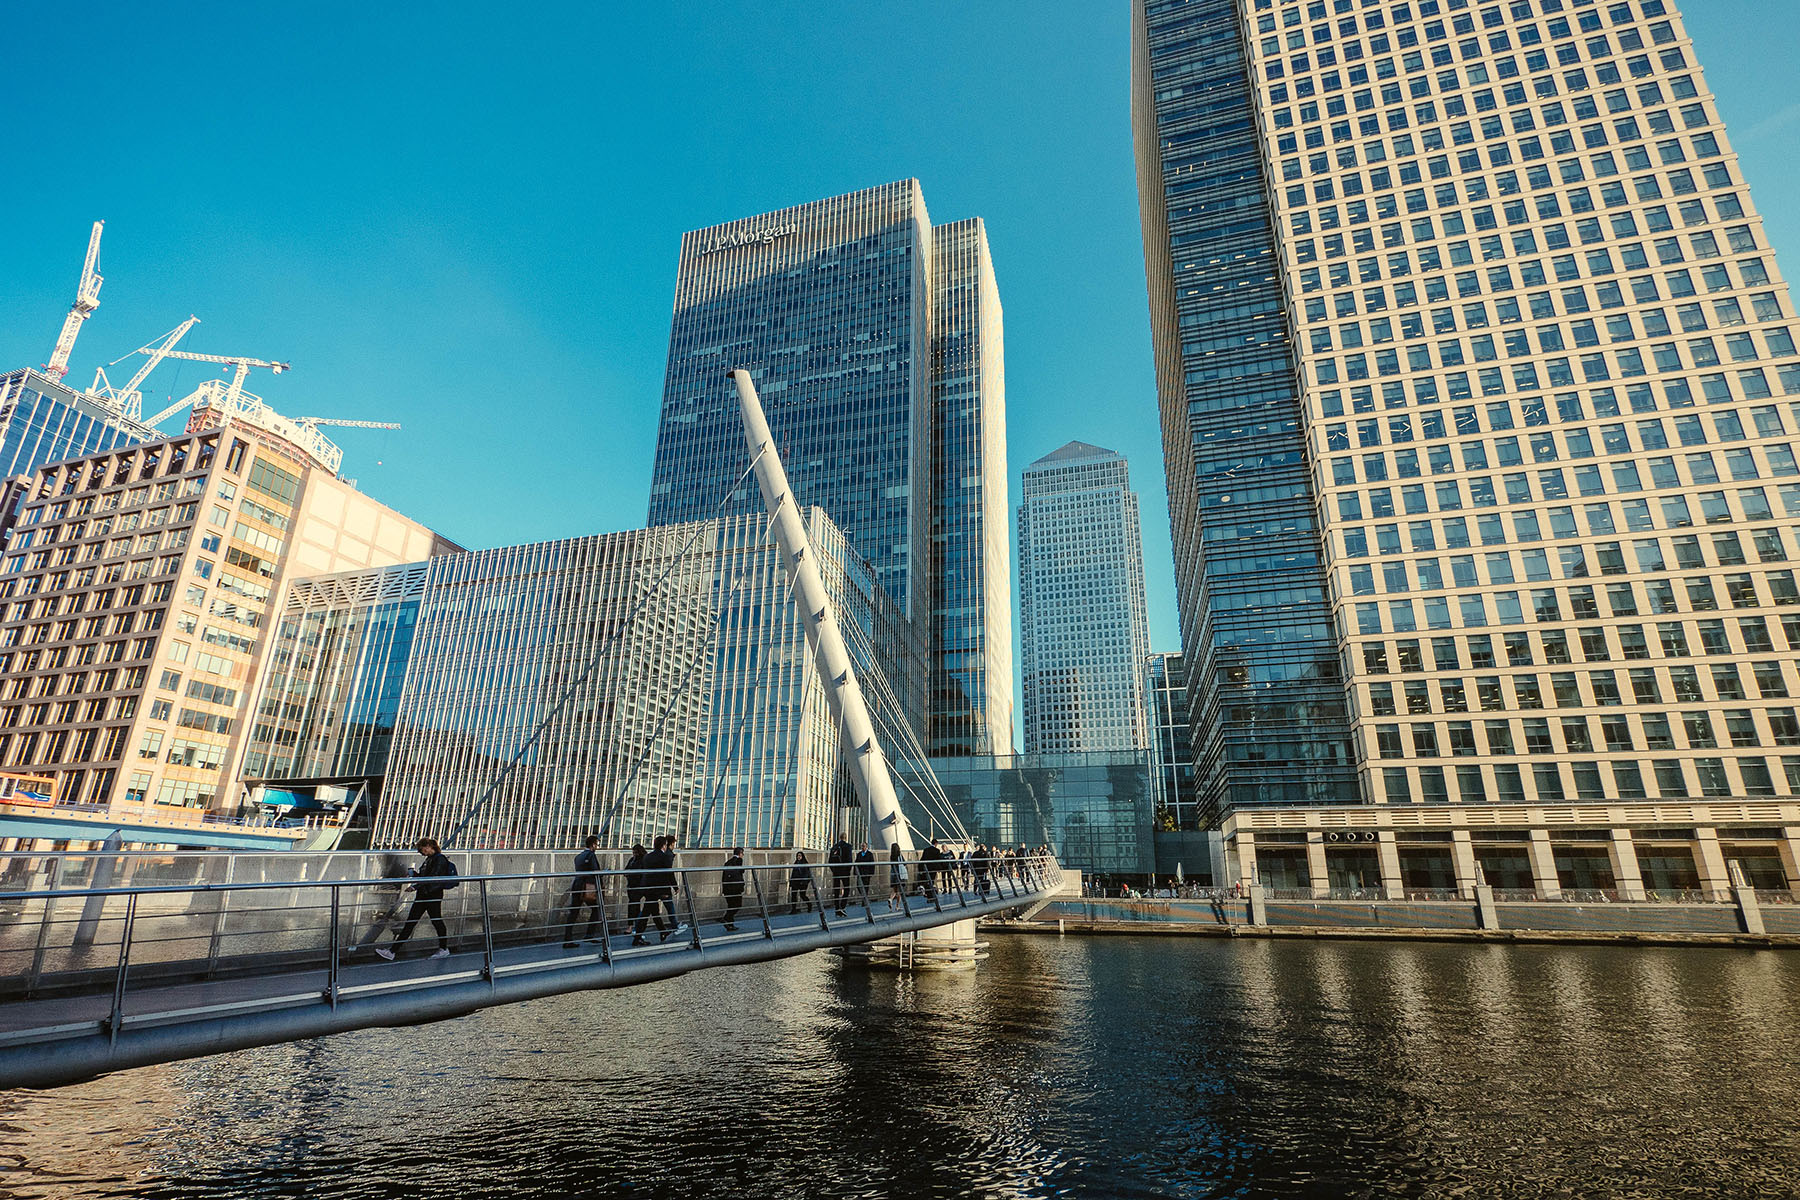 Event | Canary Wharf | London